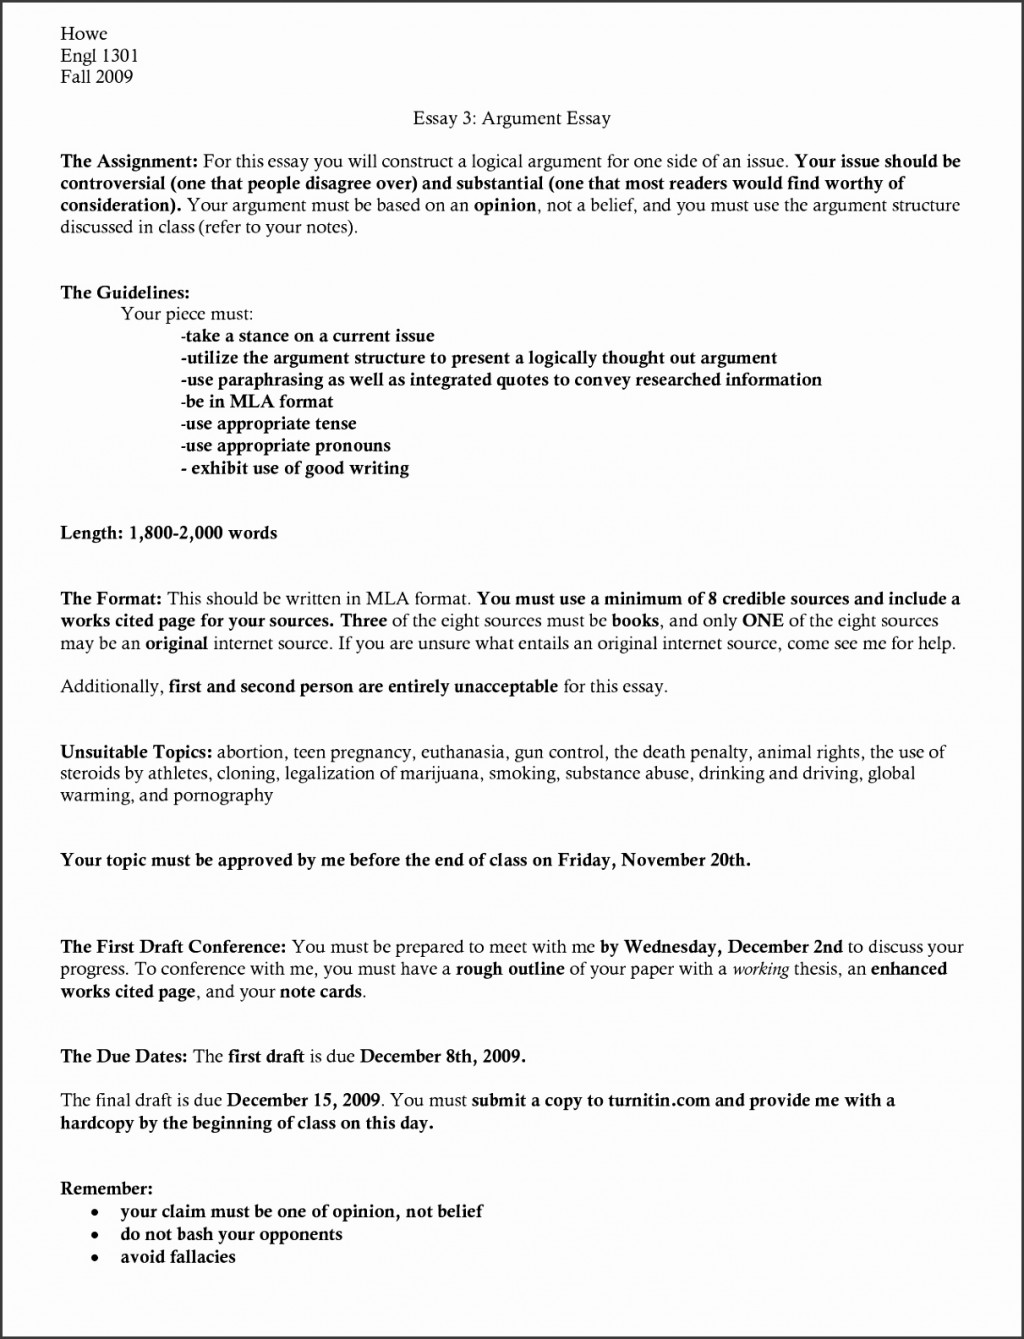 020 Research Paper How To Format Mla Style Template Uguco Best Of Persuasive Essay Fantastic A Large